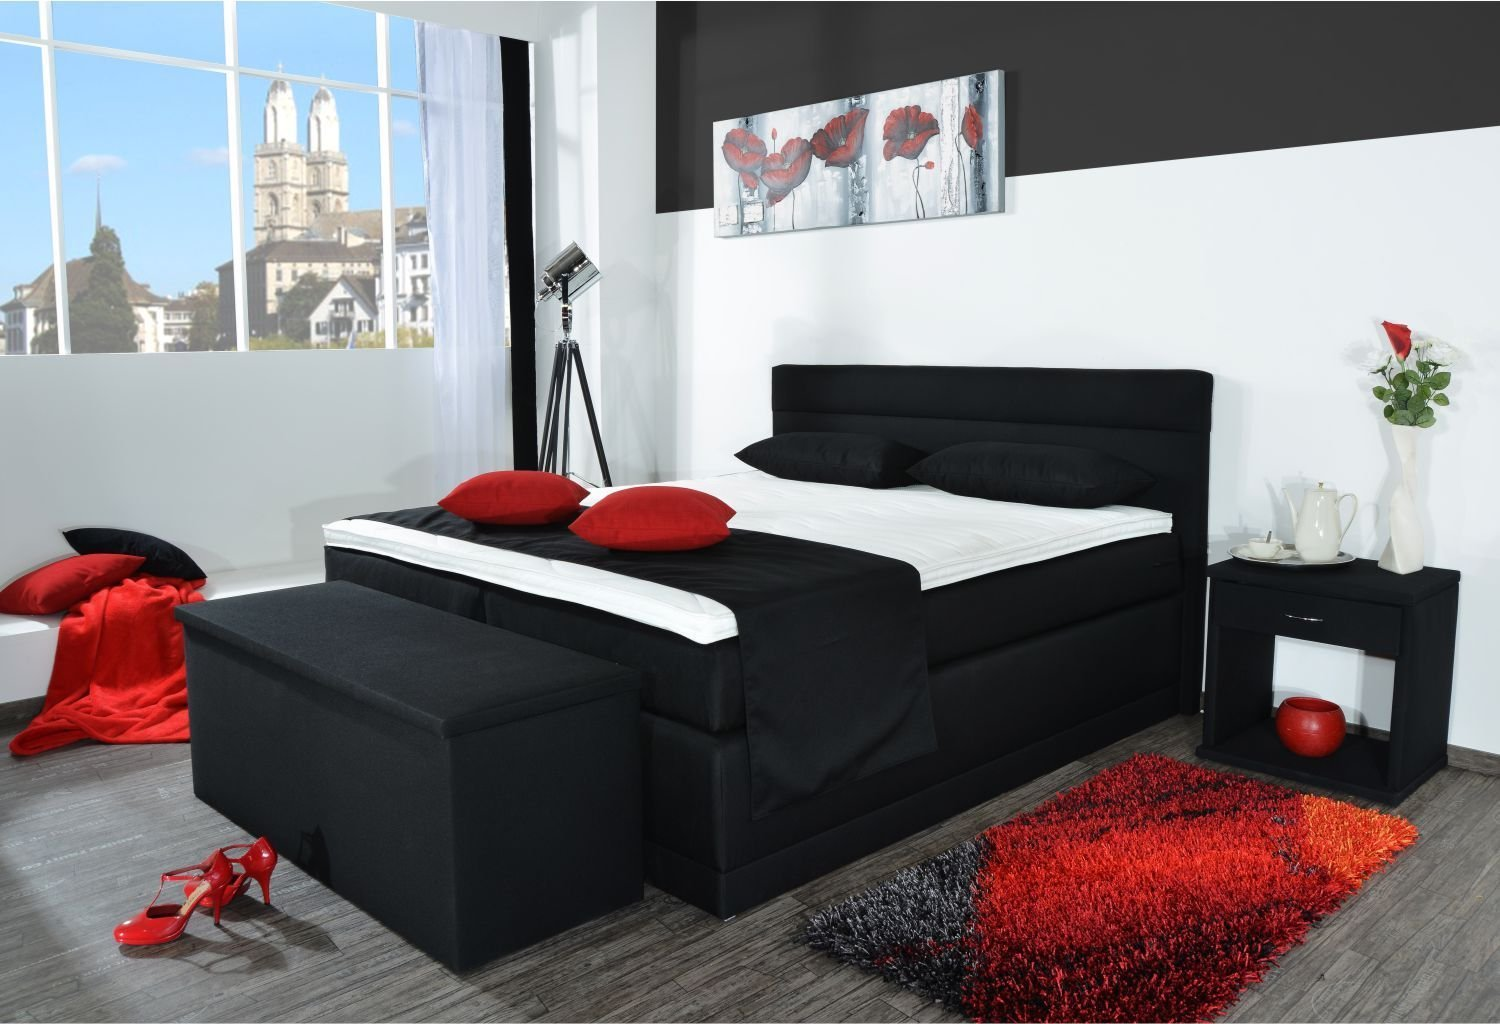 boxspringbett bali bt auch mit bettkasten oder elektrisch. Black Bedroom Furniture Sets. Home Design Ideas